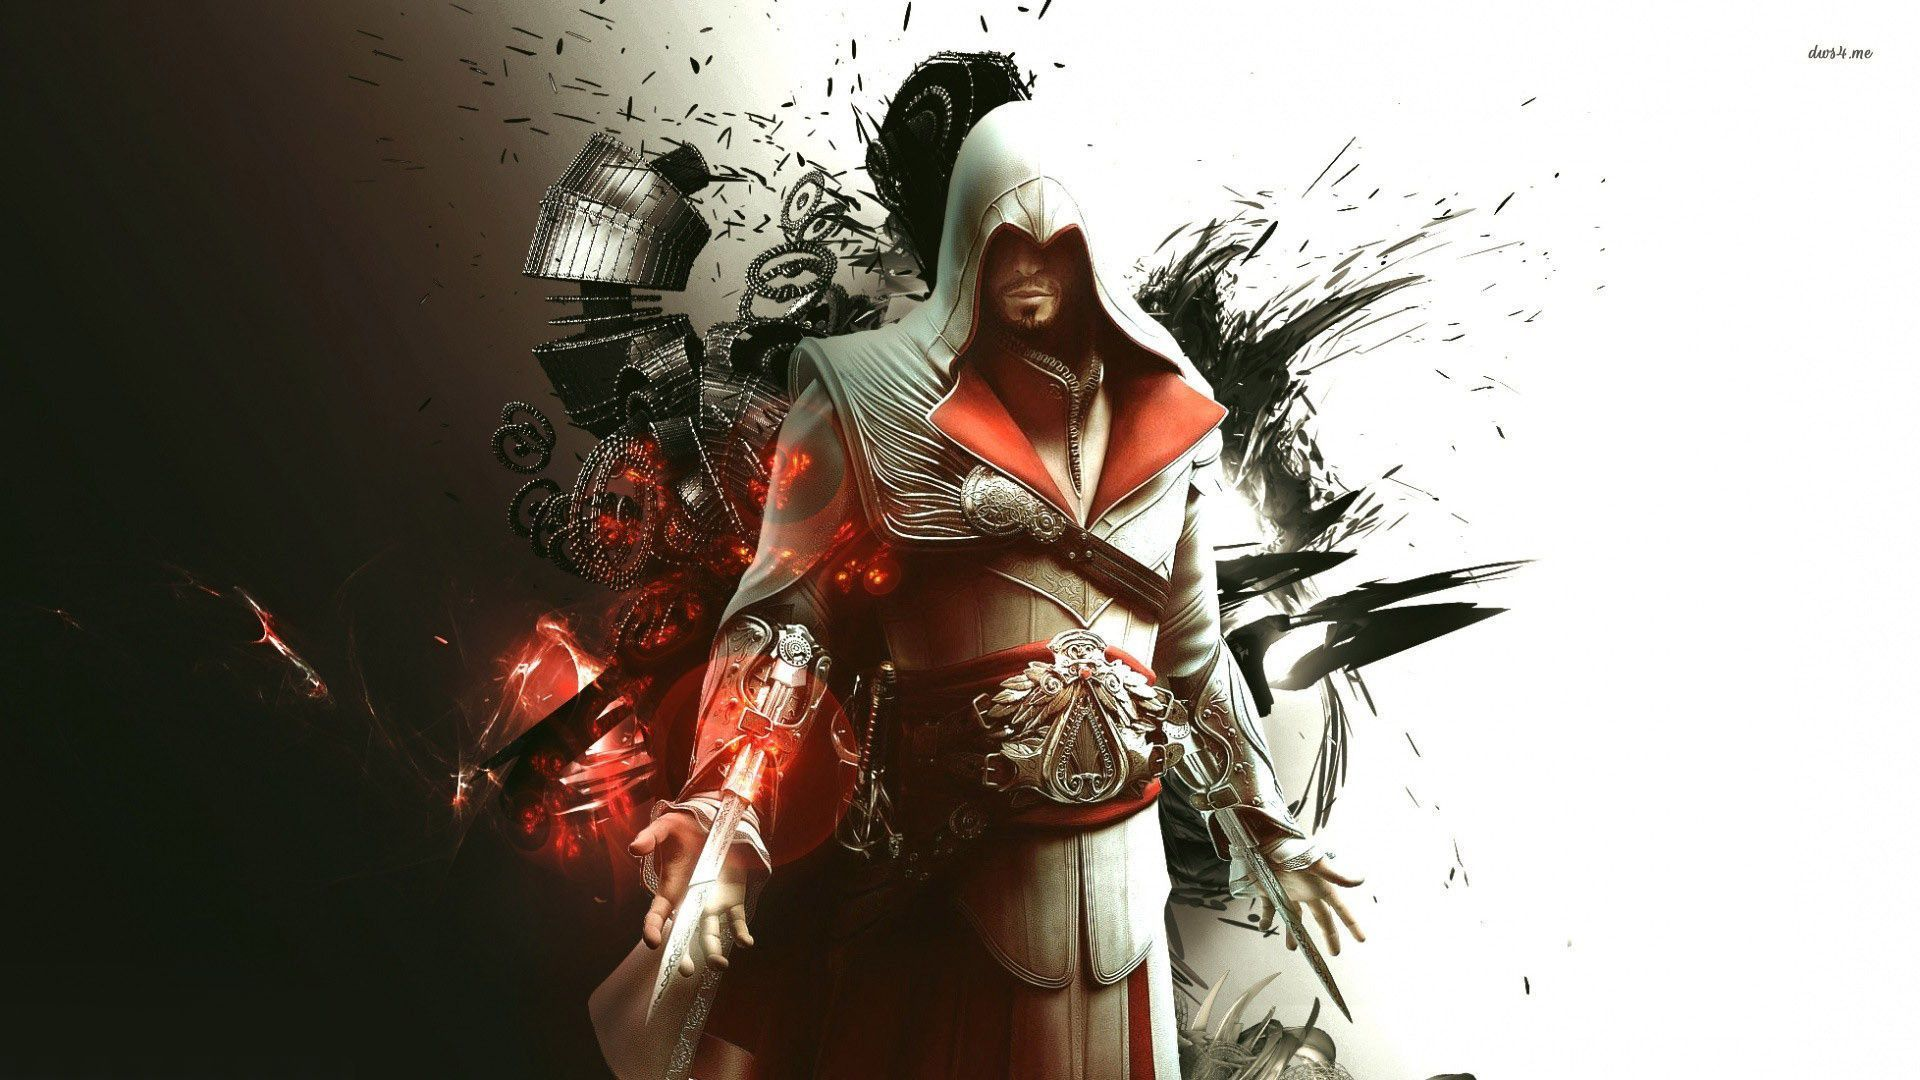 assassins creed brotherhood hd desktop wallpaper widescreen | hd